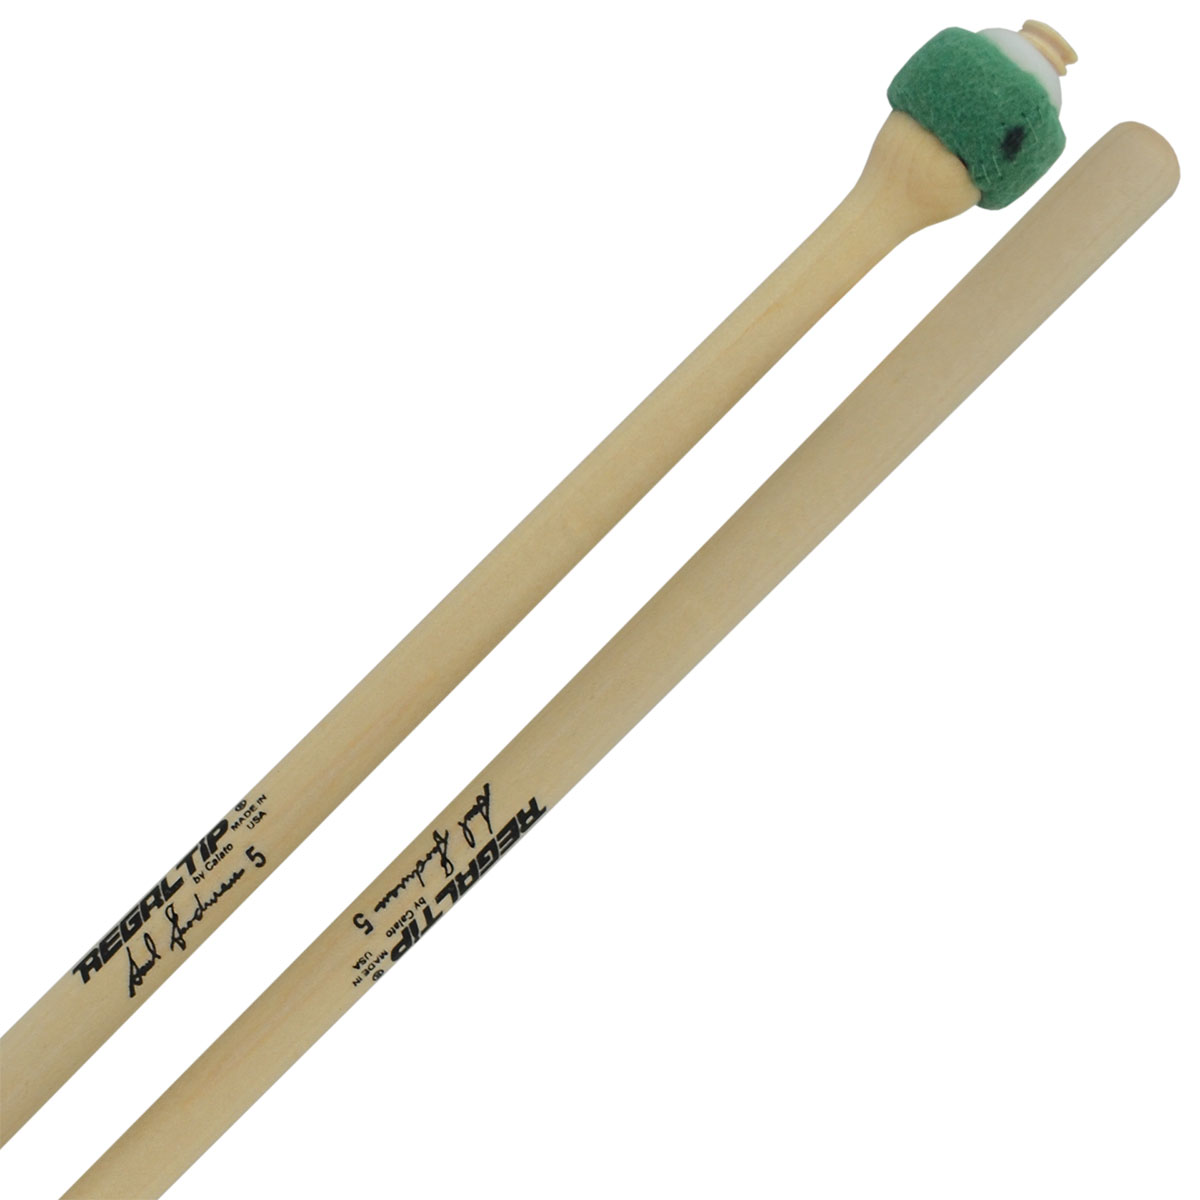 Regal Tip Saul Goodman Signature #5 Ultra Staccato Timpani Mallets